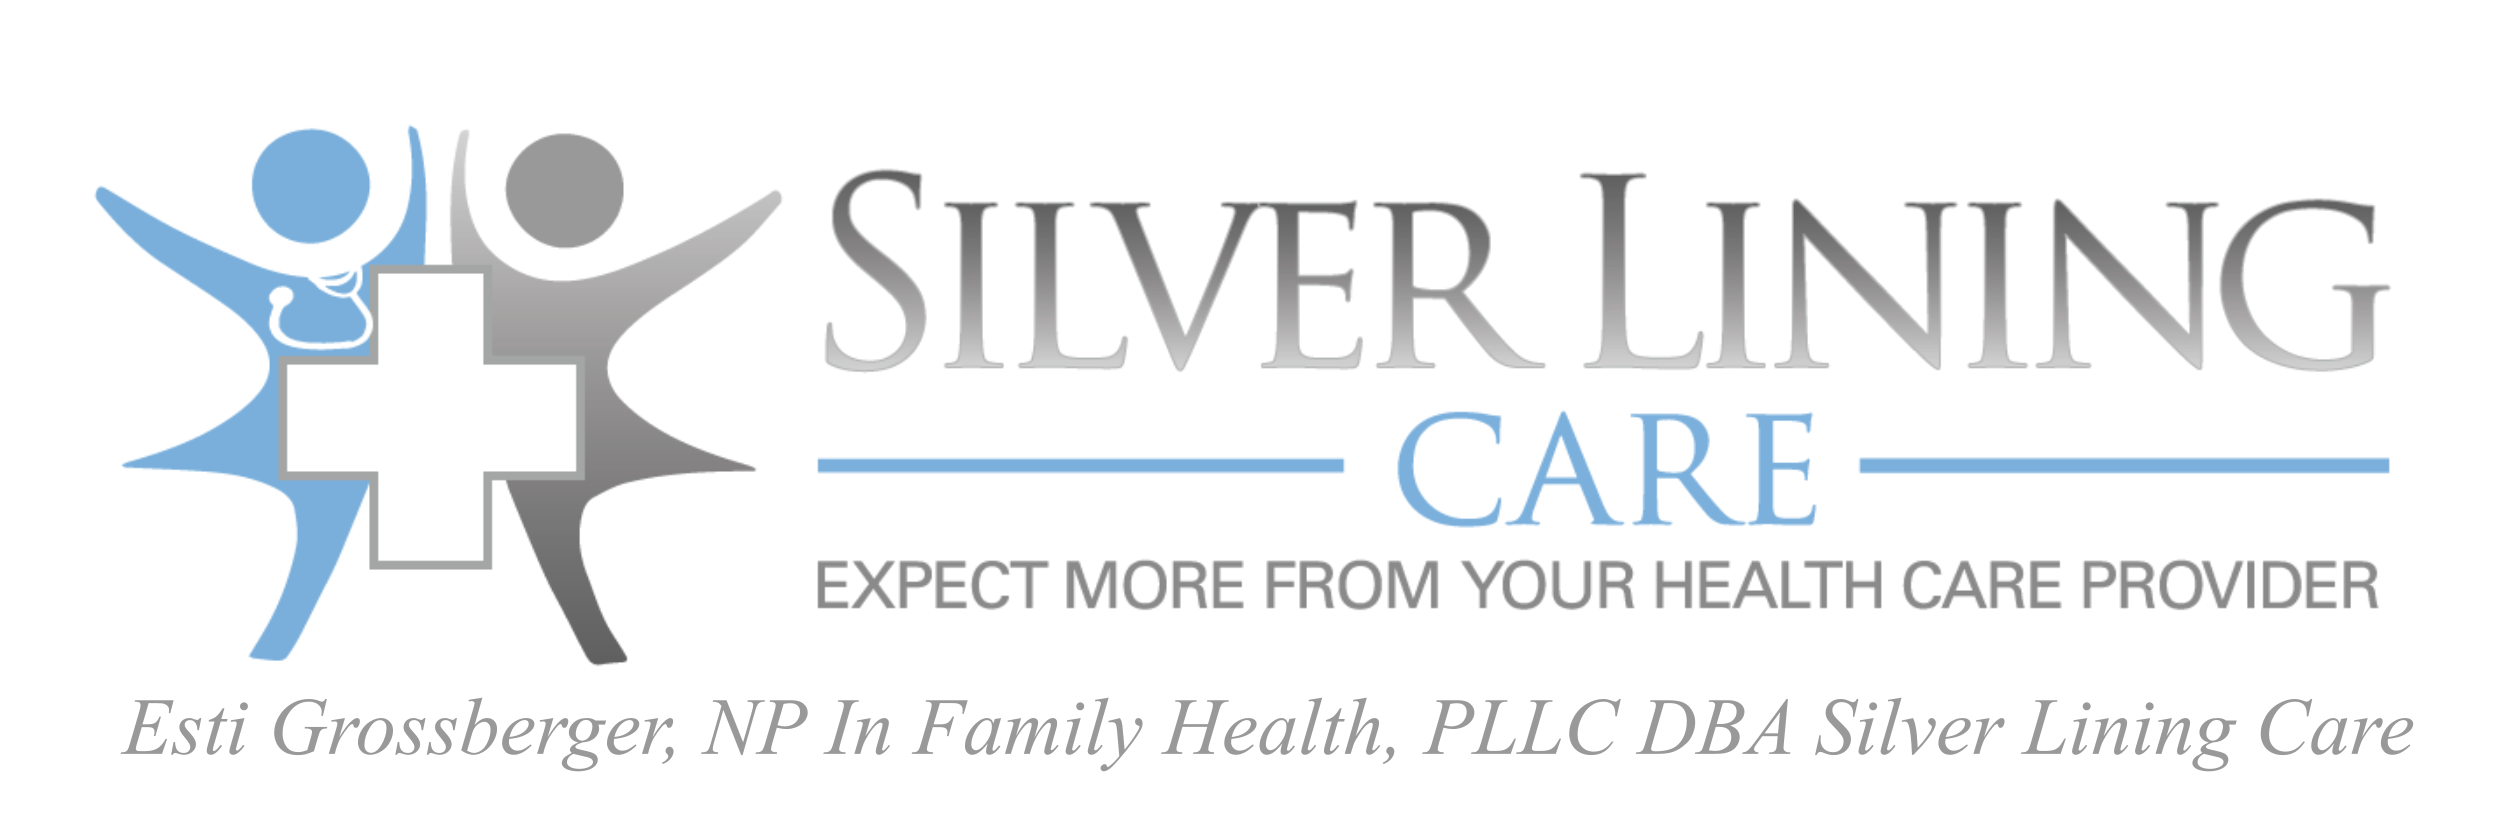 Silver Lining Care